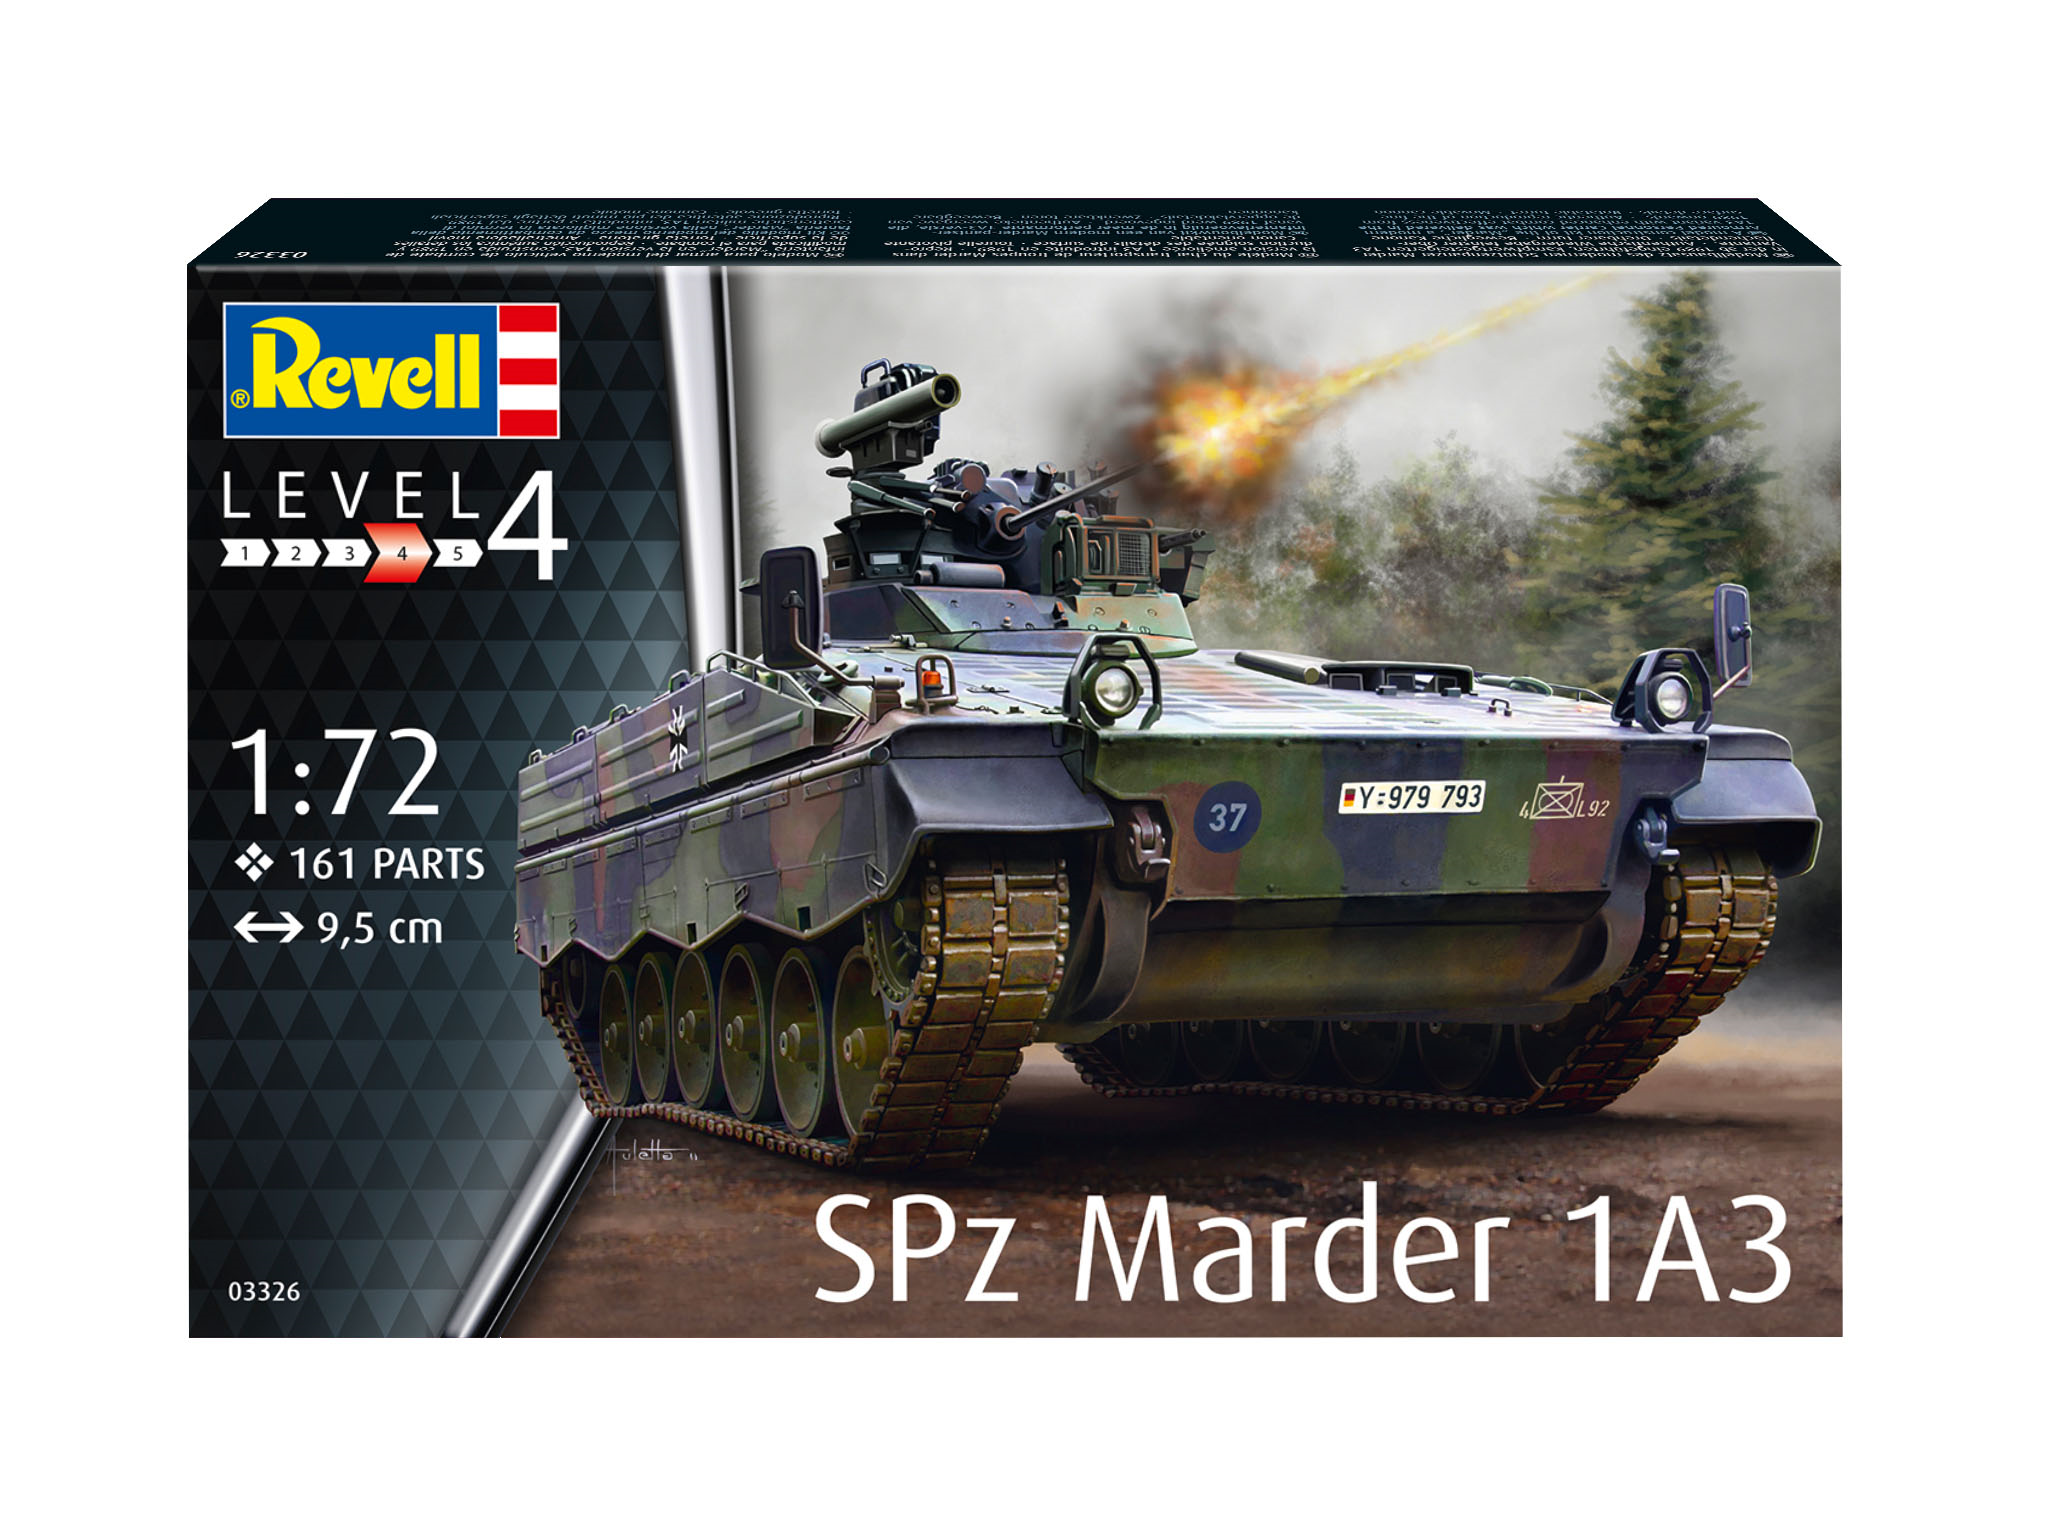 REVELL SPz Marder 1A3